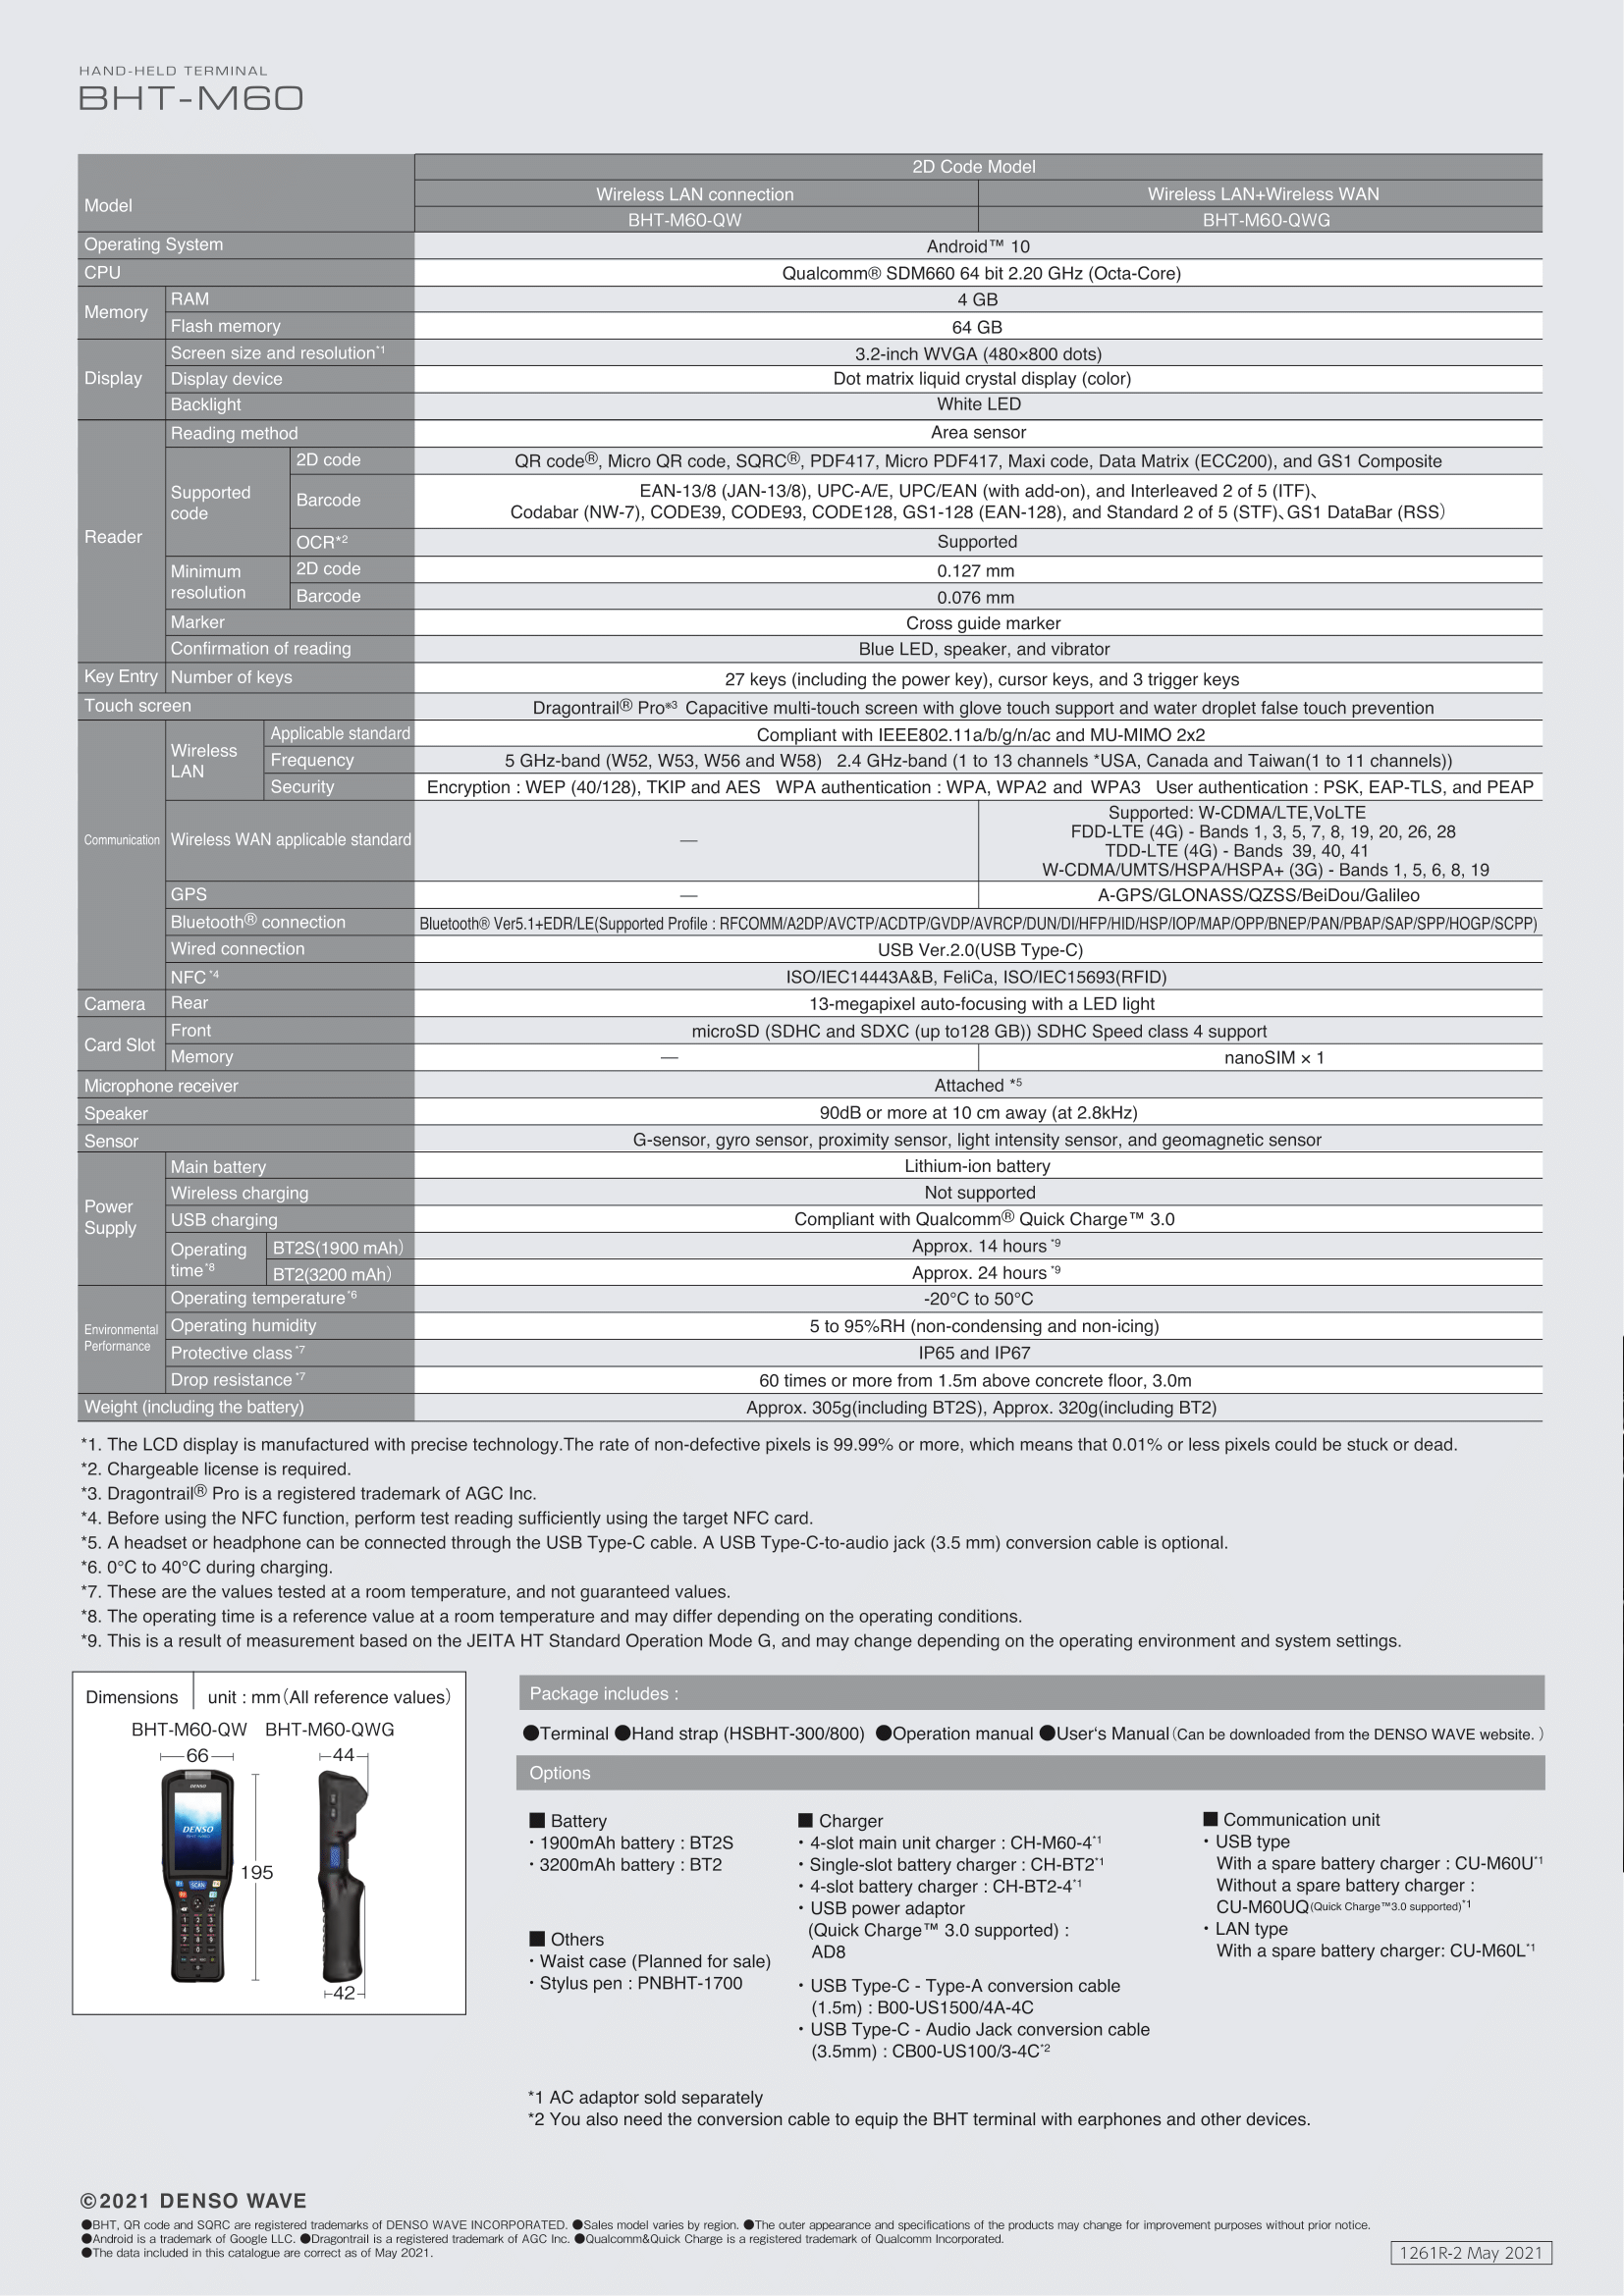 Denso BHT-M60 Specifications